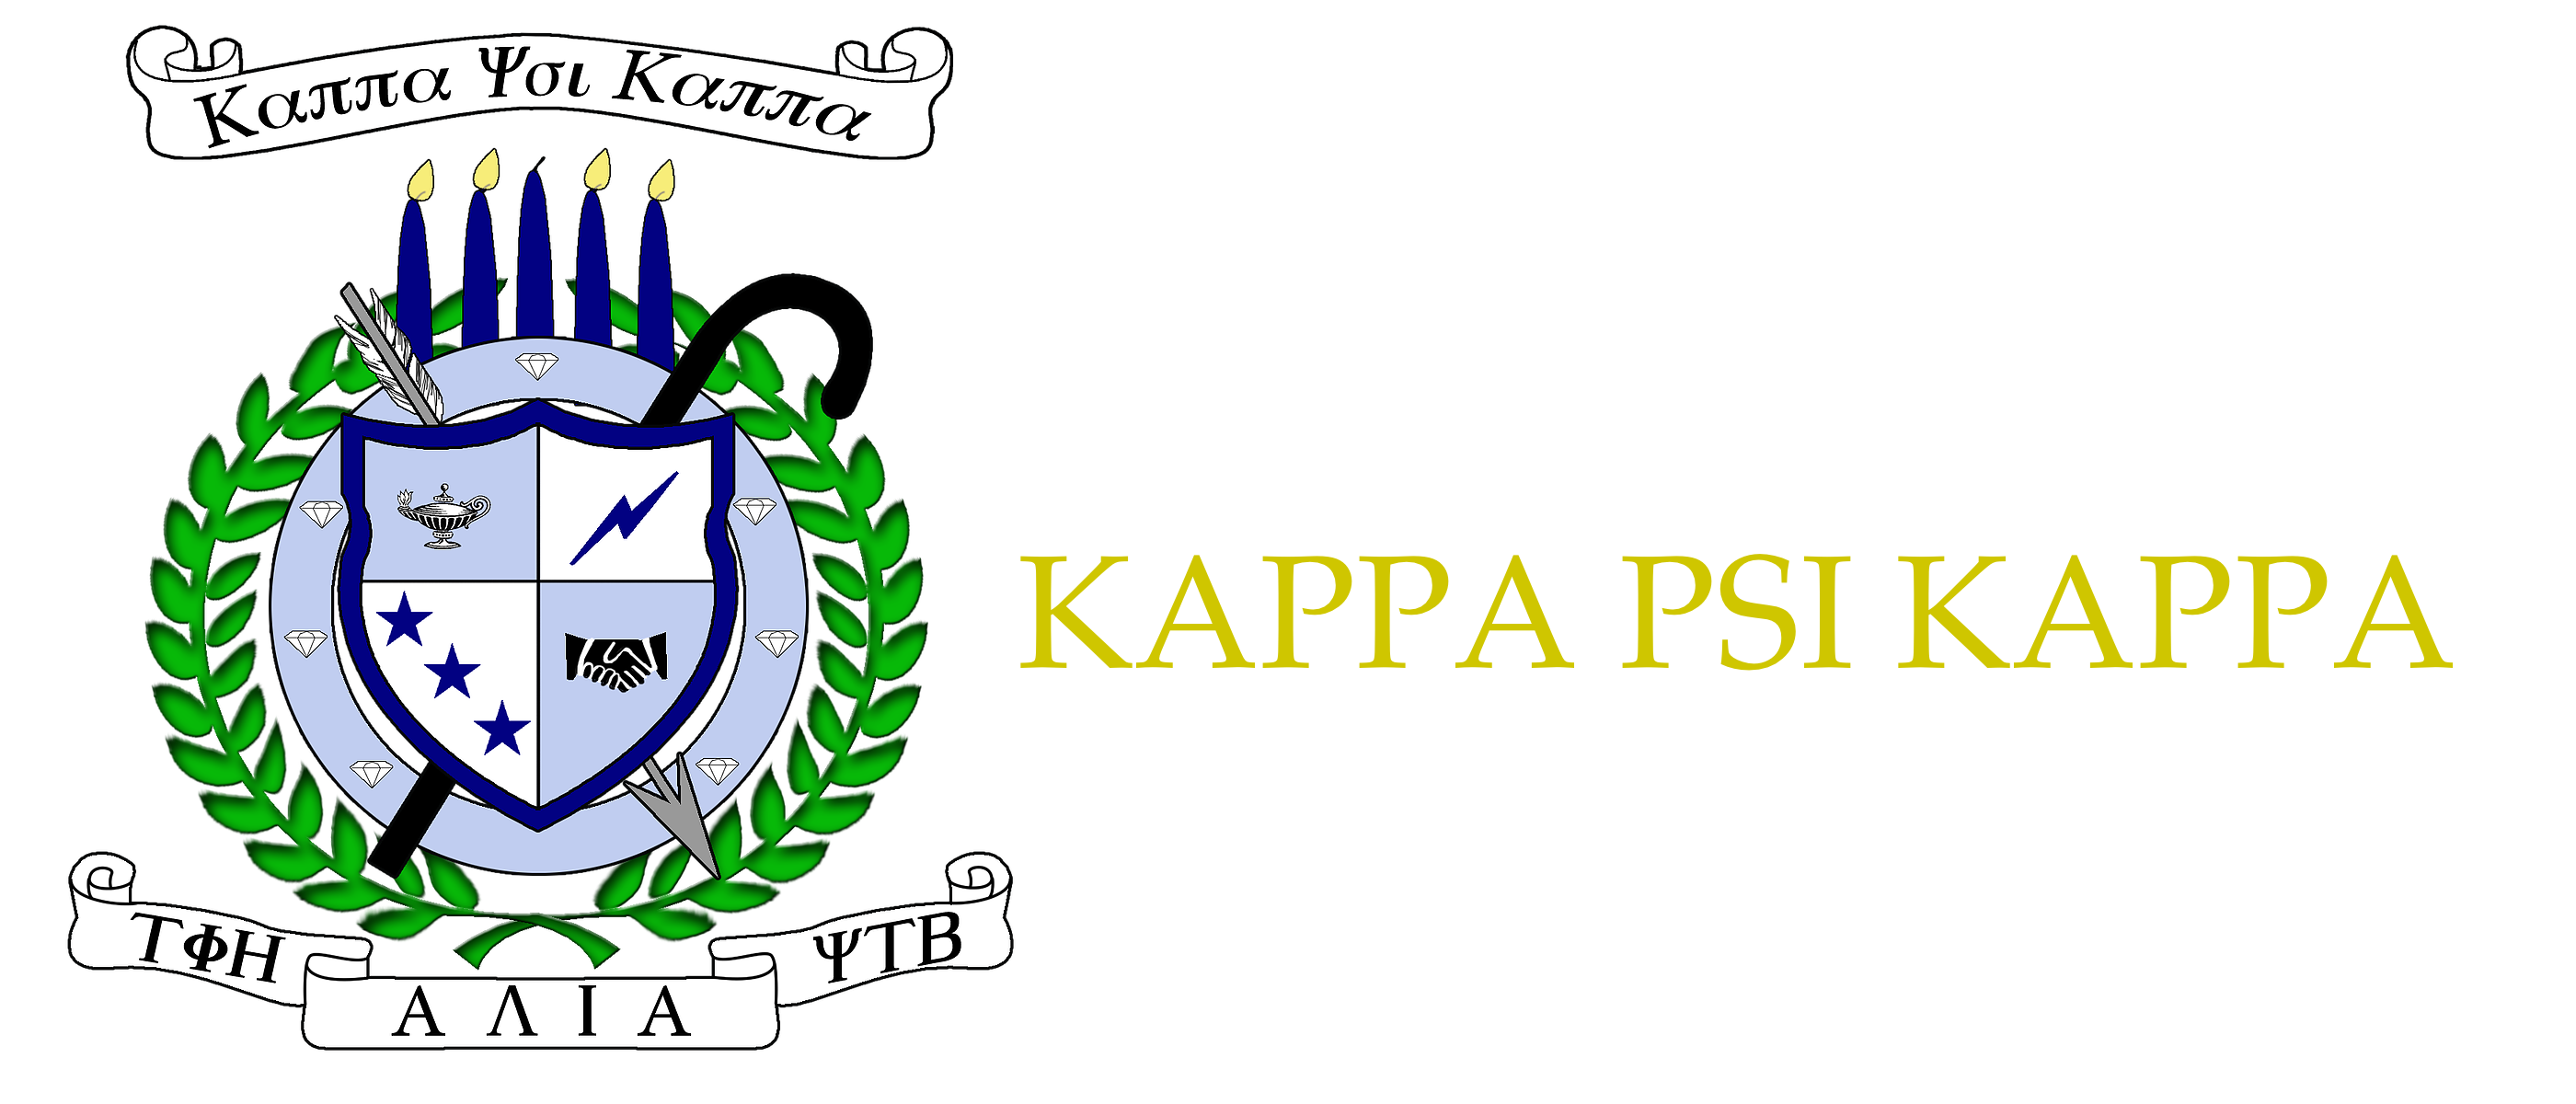 THE Delta Chapter of KPsiK Fraternity Inc